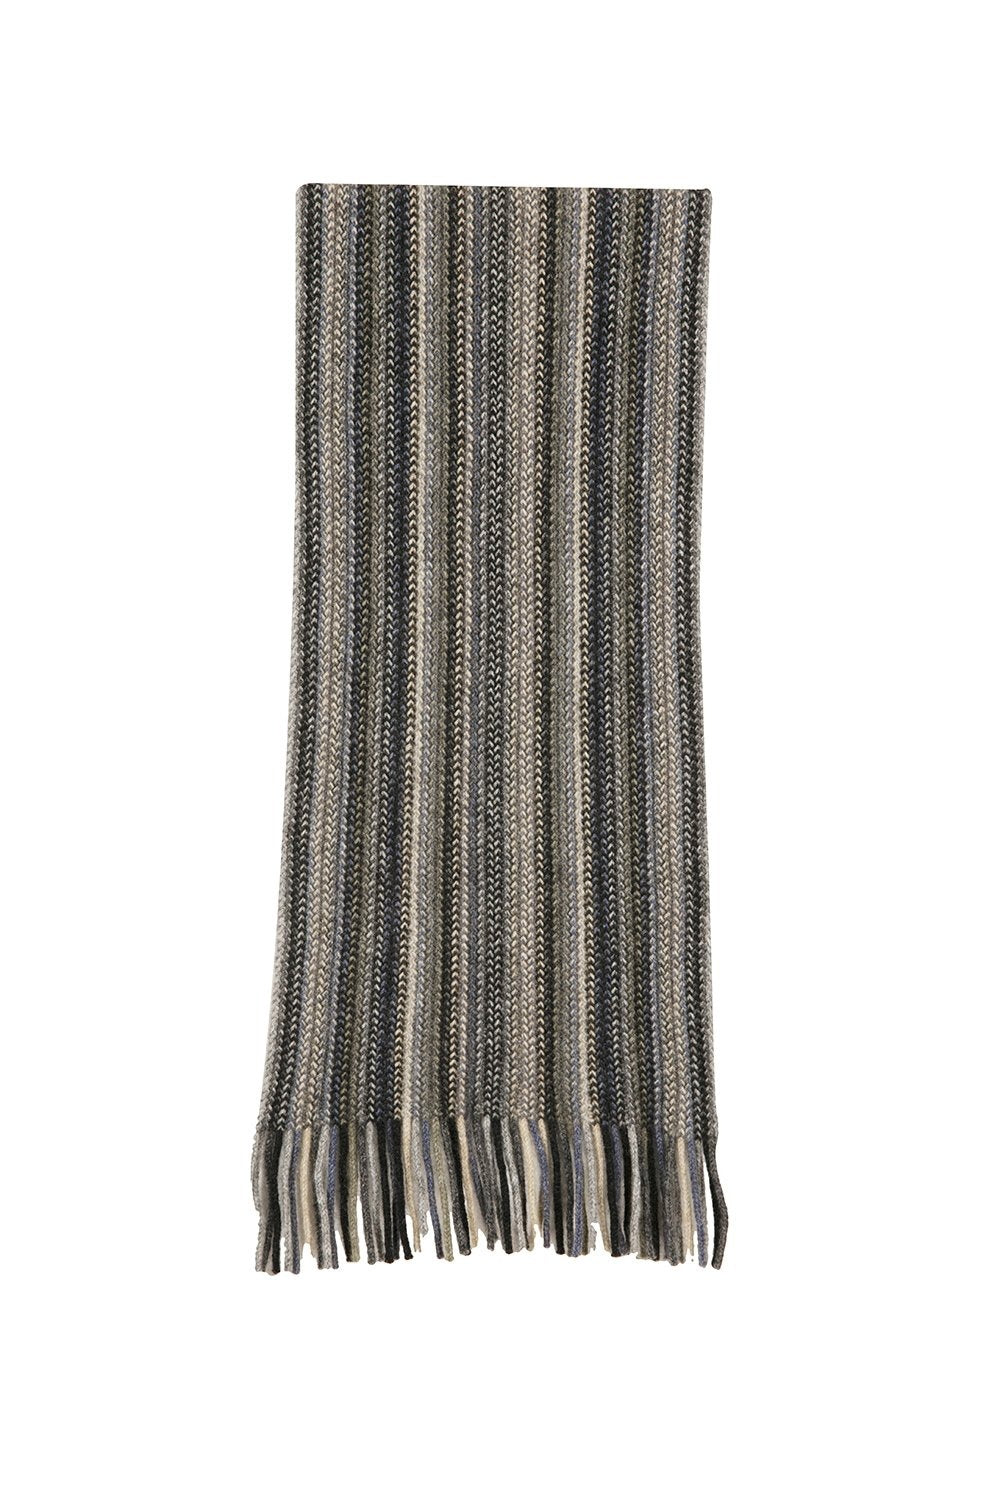 MULTI STRIPED SCARF - Woolshed Gallery